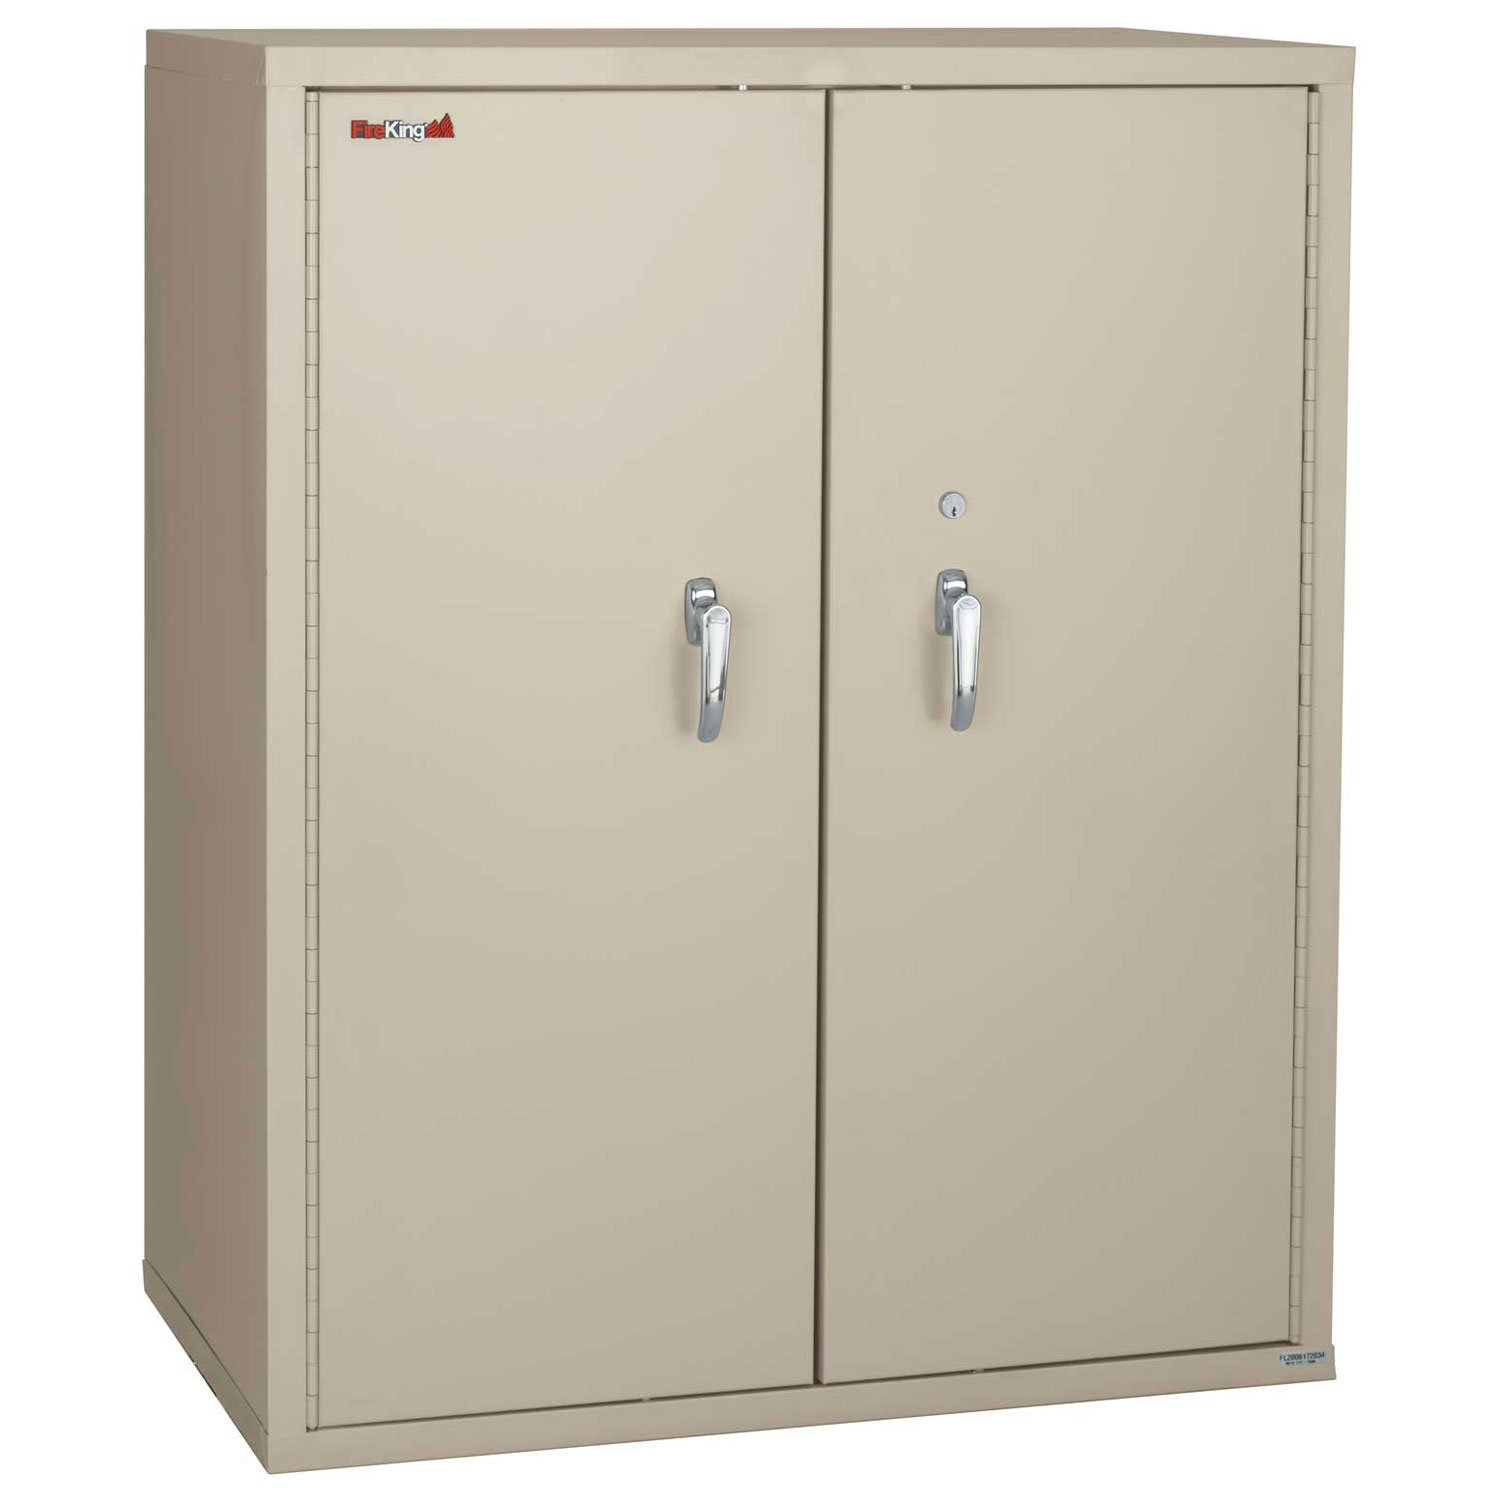 Amazon.com: FireKing Fireproof Storage Cabinet With End Tab Inserts, 36 X  19 1/4 X 44, Parchment: Office Products